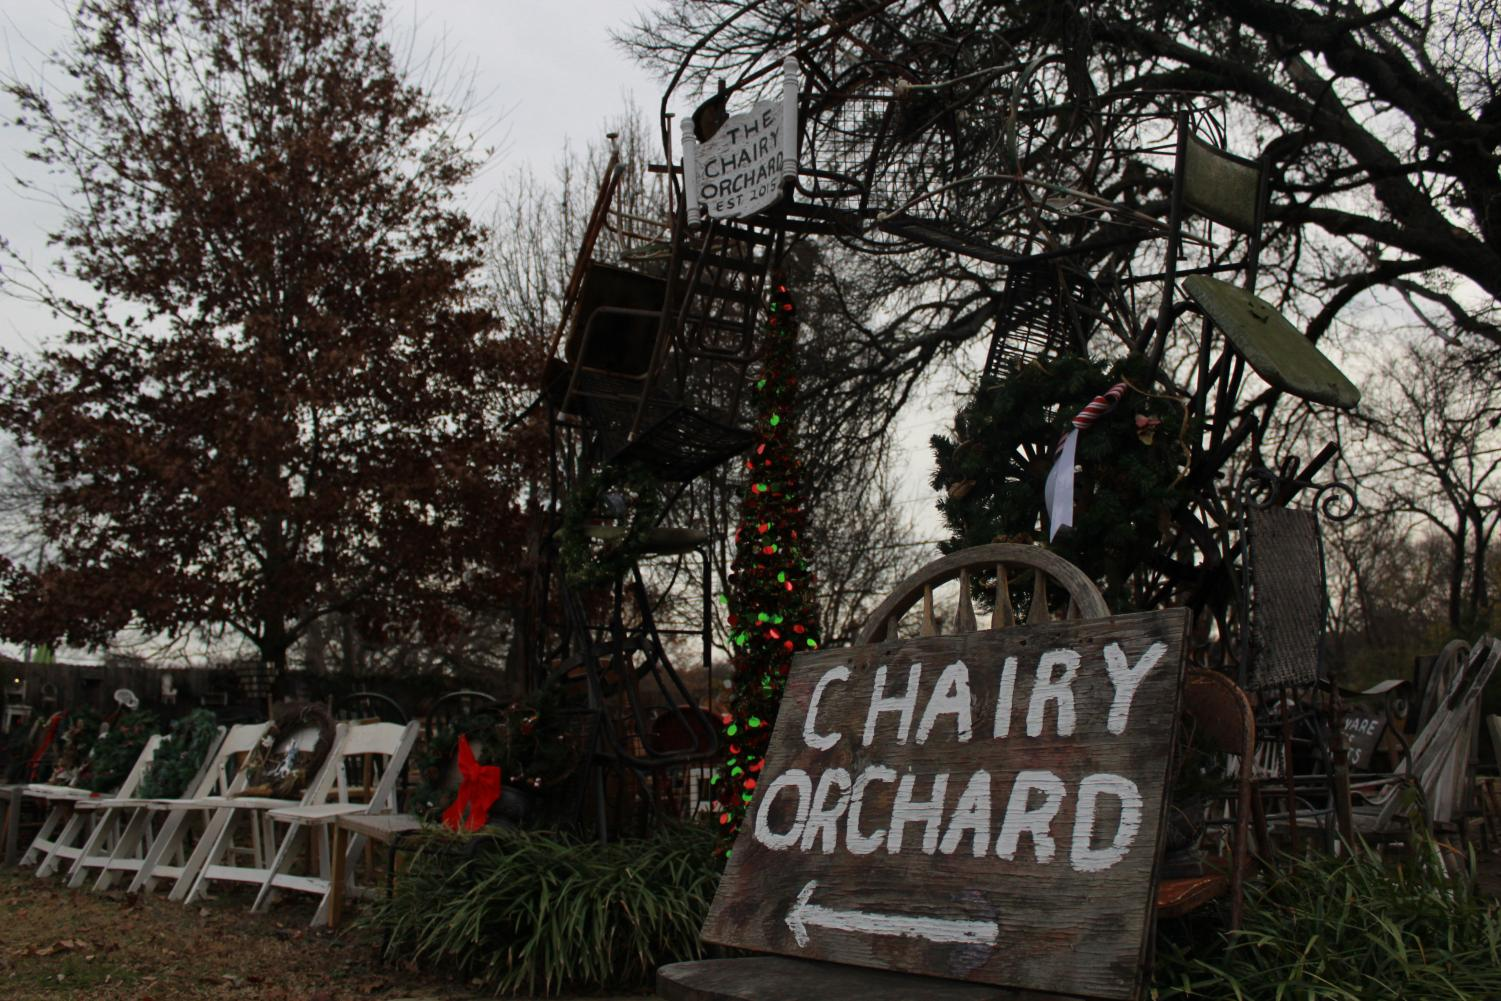 The Chairy Orchard created in 2005 by Judy Smith and Anne Pearson outside of Denton.